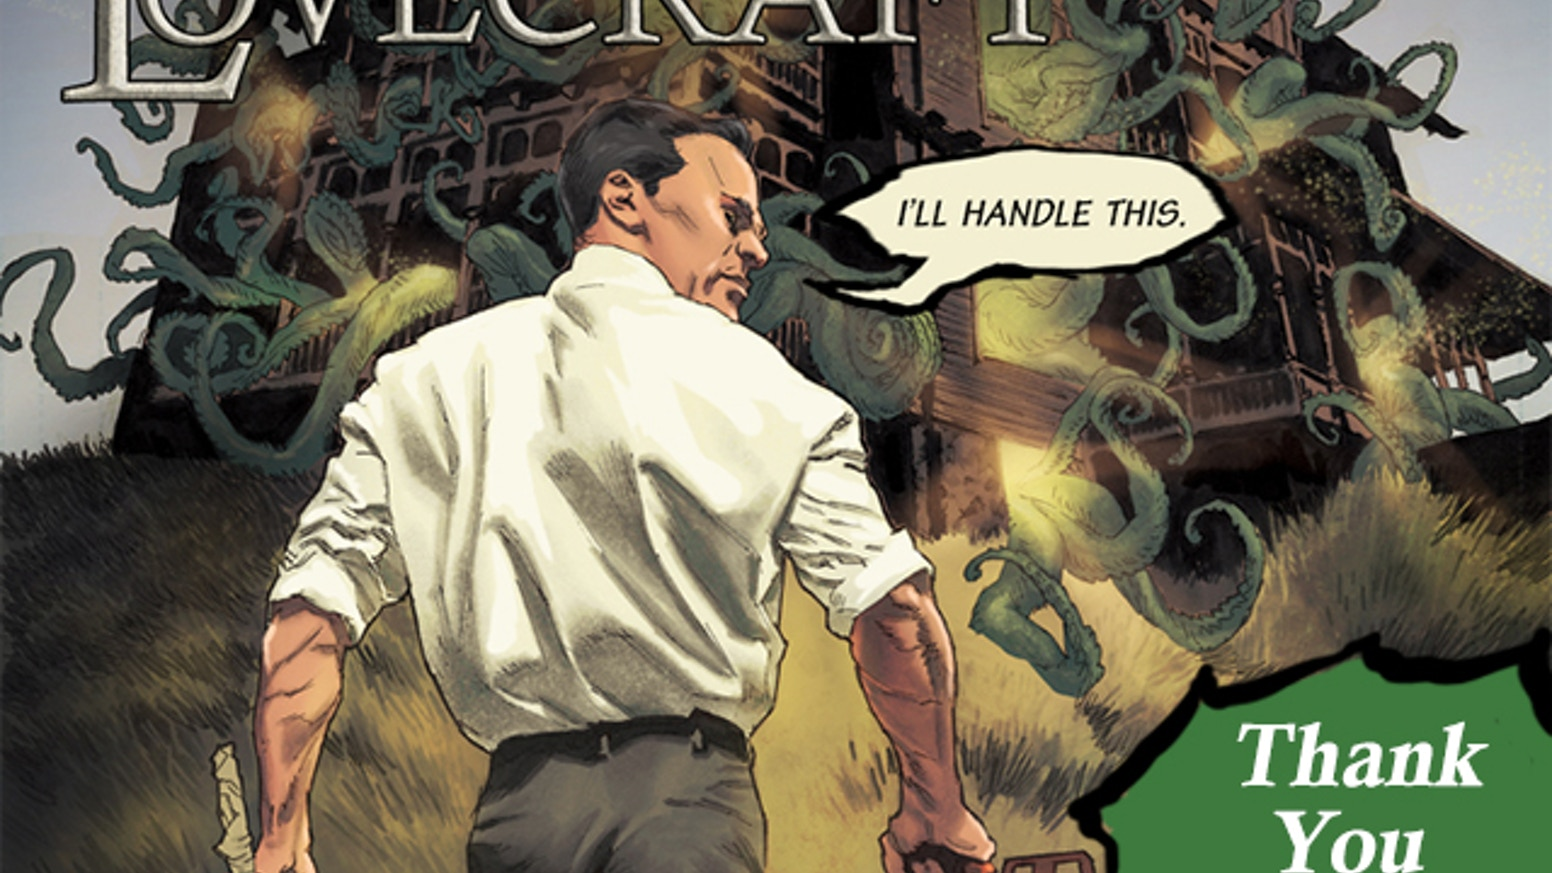 A 64-page limited edition comic that recasts H.P. Lovecraft as a  modern-day, kick-ass action hero & alchemist.